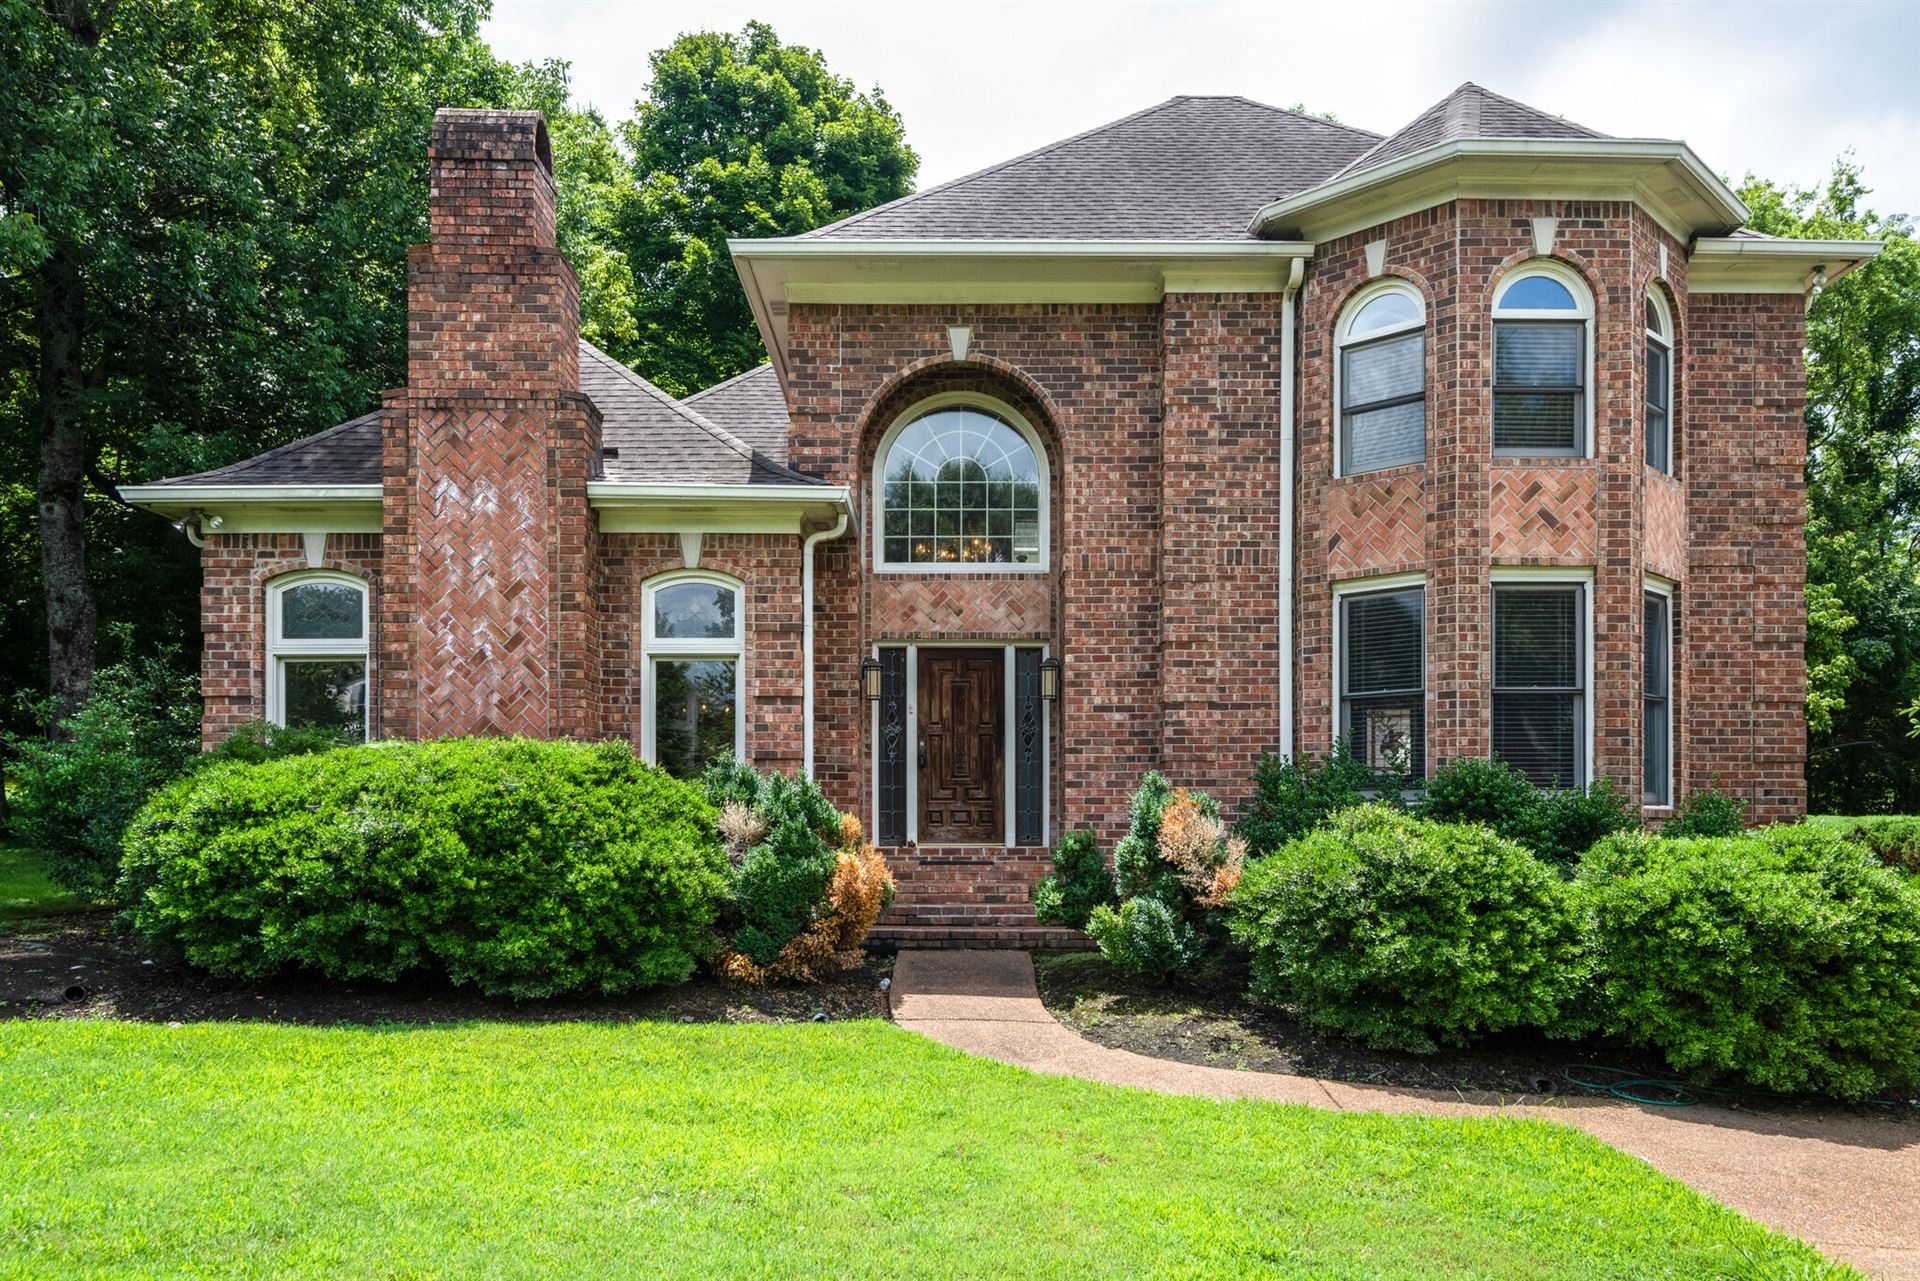 Photo of 9421 Raven Hollow Rd, Brentwood, TN 37027 (MLS # 2274758)